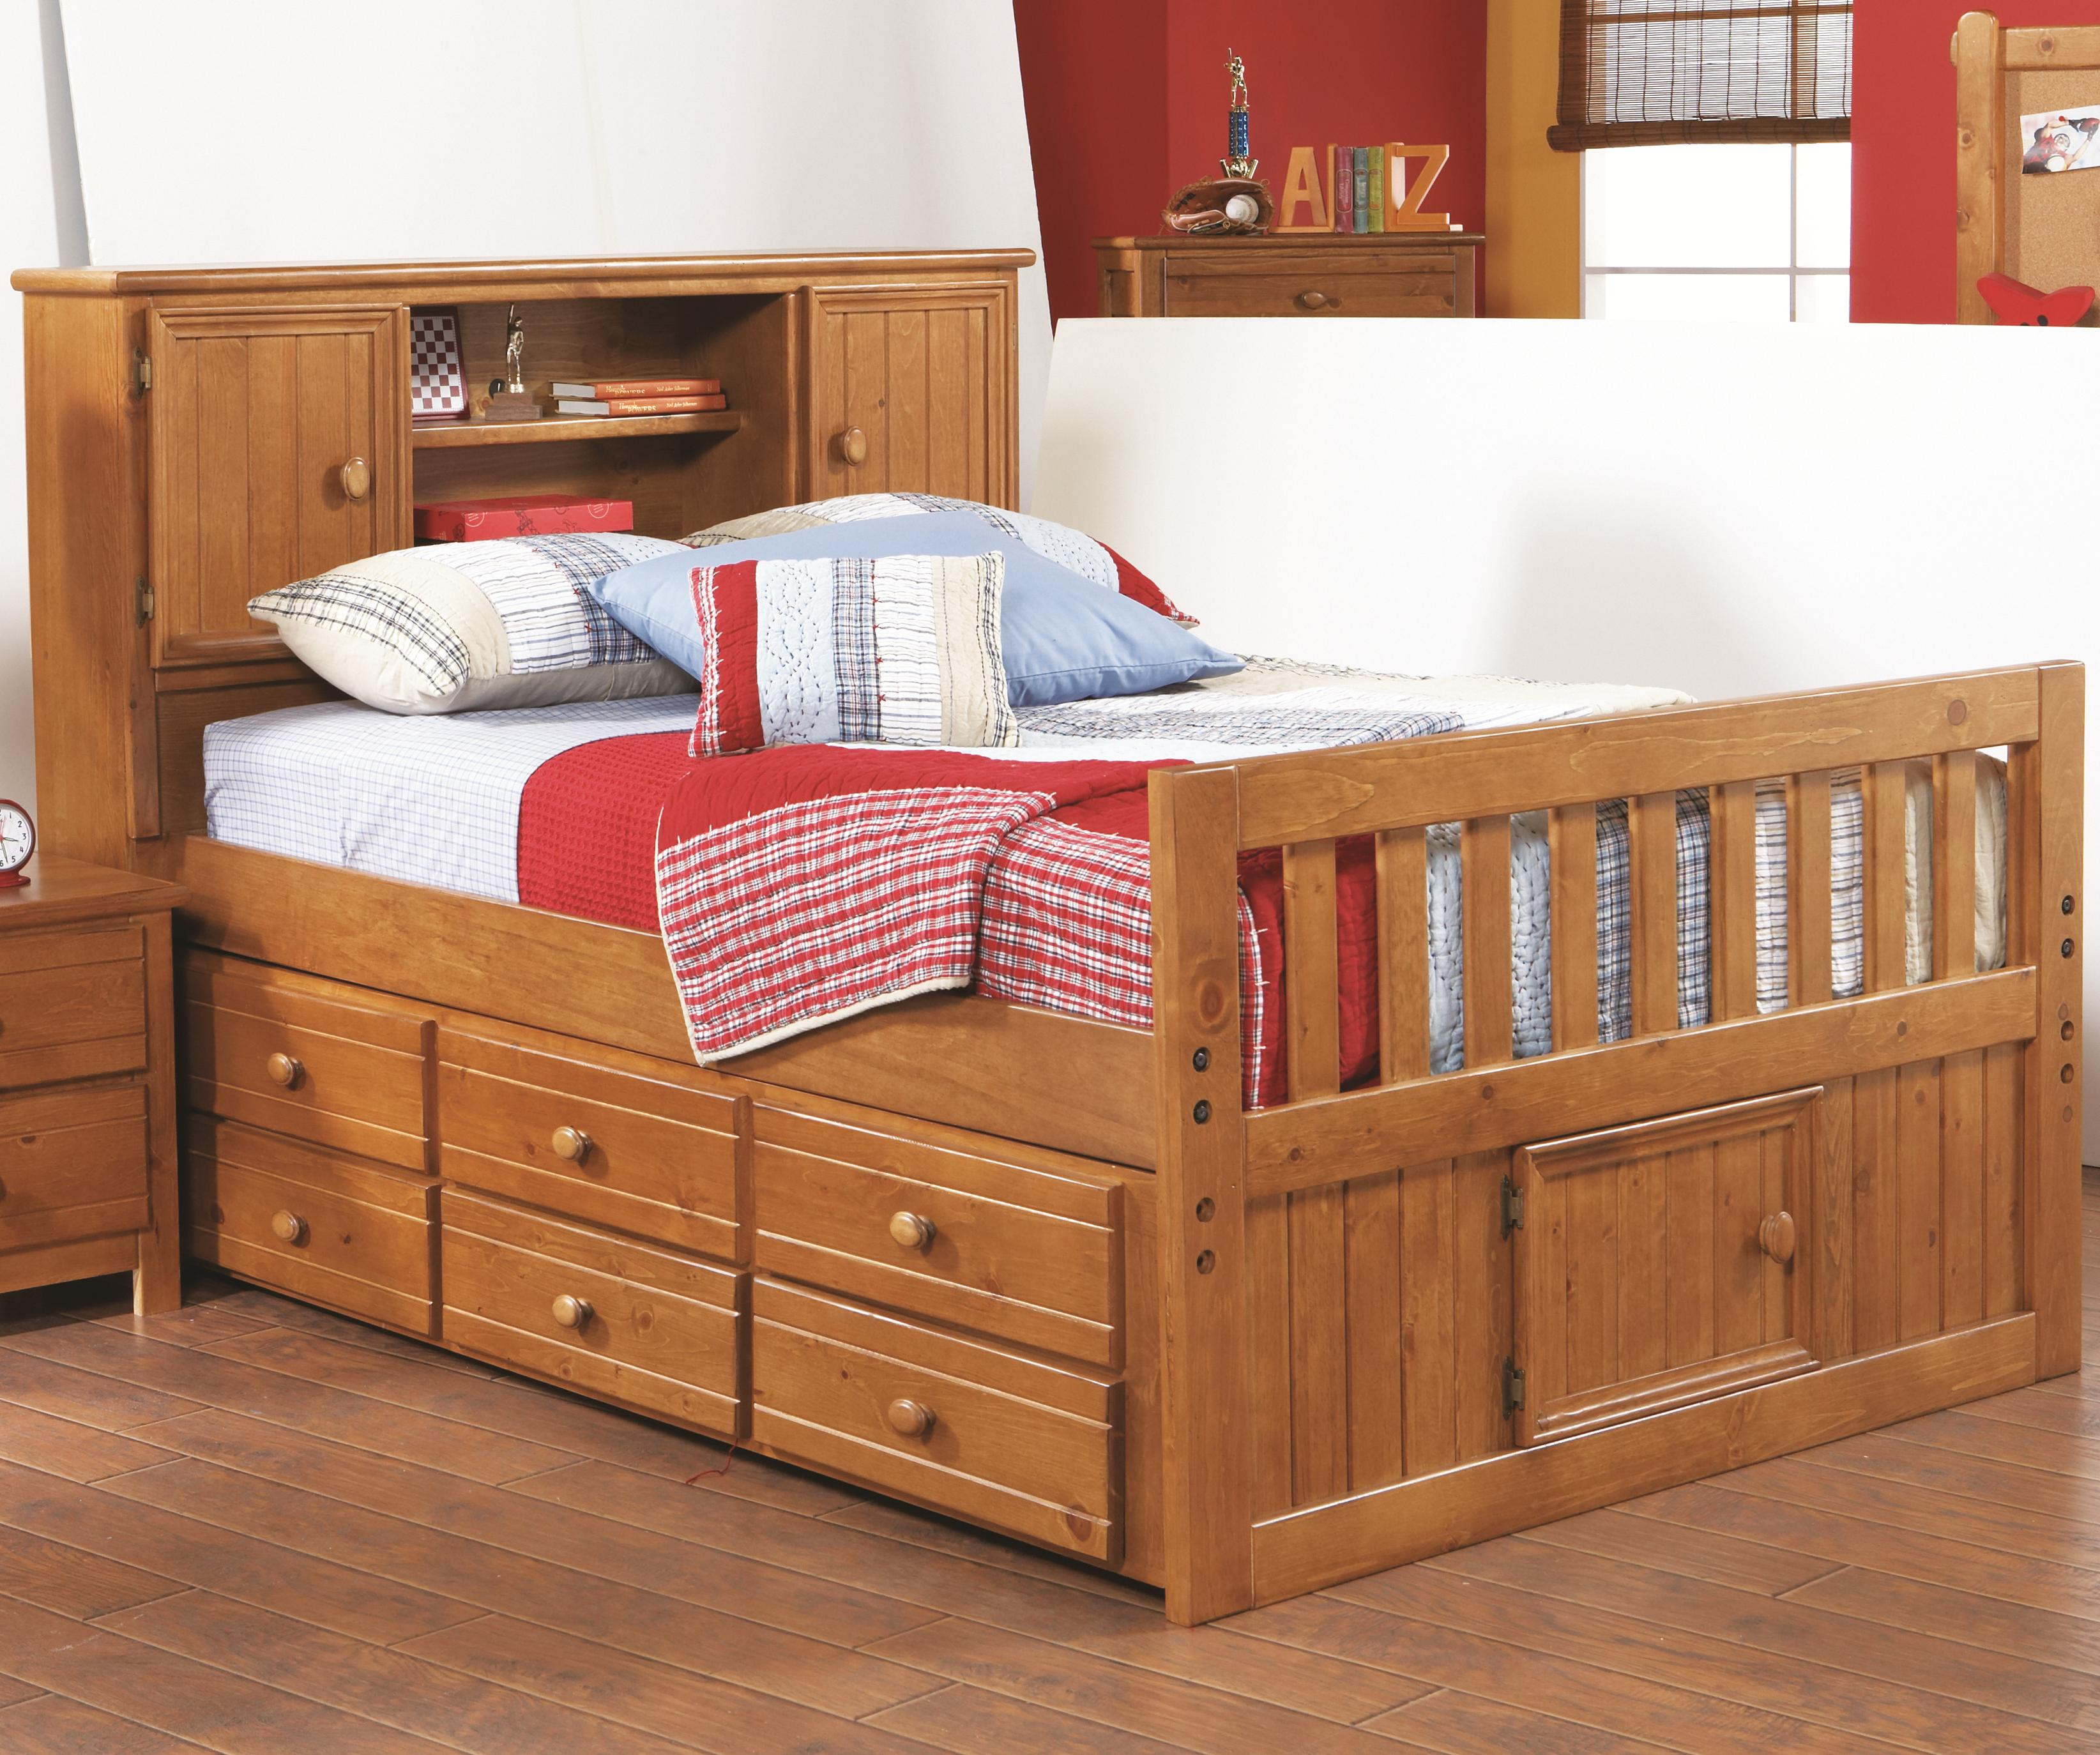 Morris Home Furnishings Cisco Cisco Full Captains Bed with Bookcase - Item Number: 90H-717+739+740